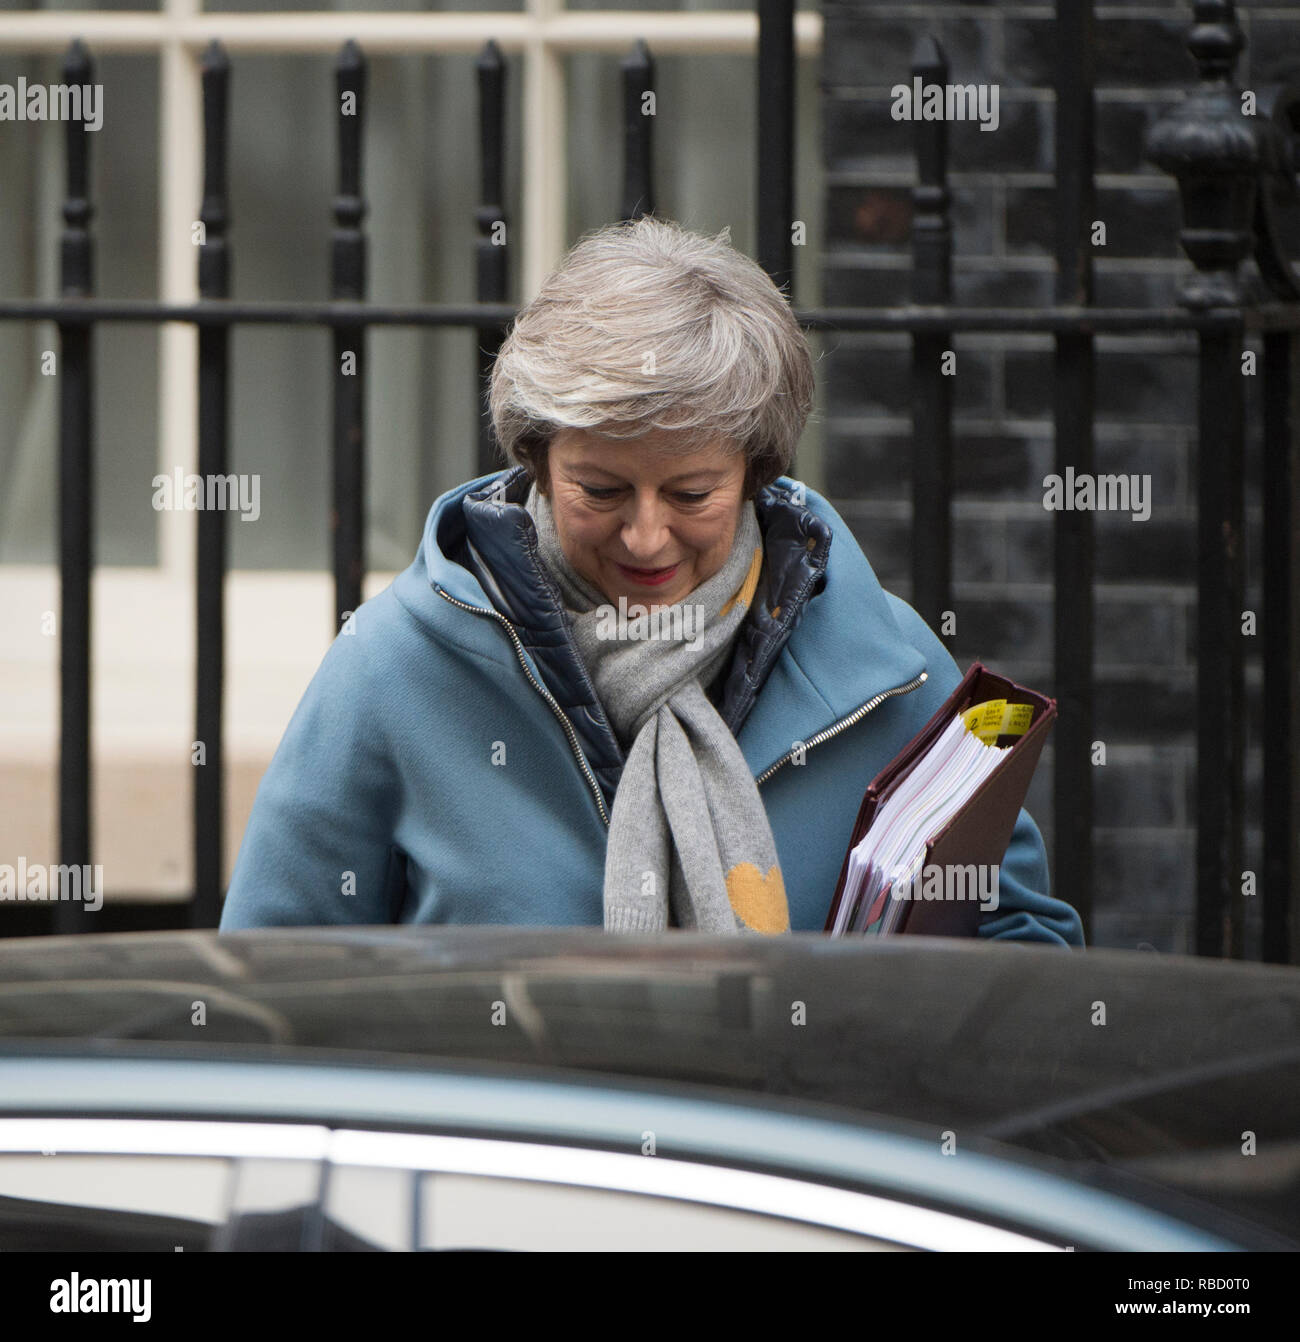 Downing Street, London, UK. 9 January 2019. Prime Minister Theresa May leaves 10 Downing Street to attend Prime Ministers Questions in Parliament, a day after Tory rebels voted for an amendment to the Finance Bill. Credit: Malcolm Park/Alamy Live News. Stock Photo